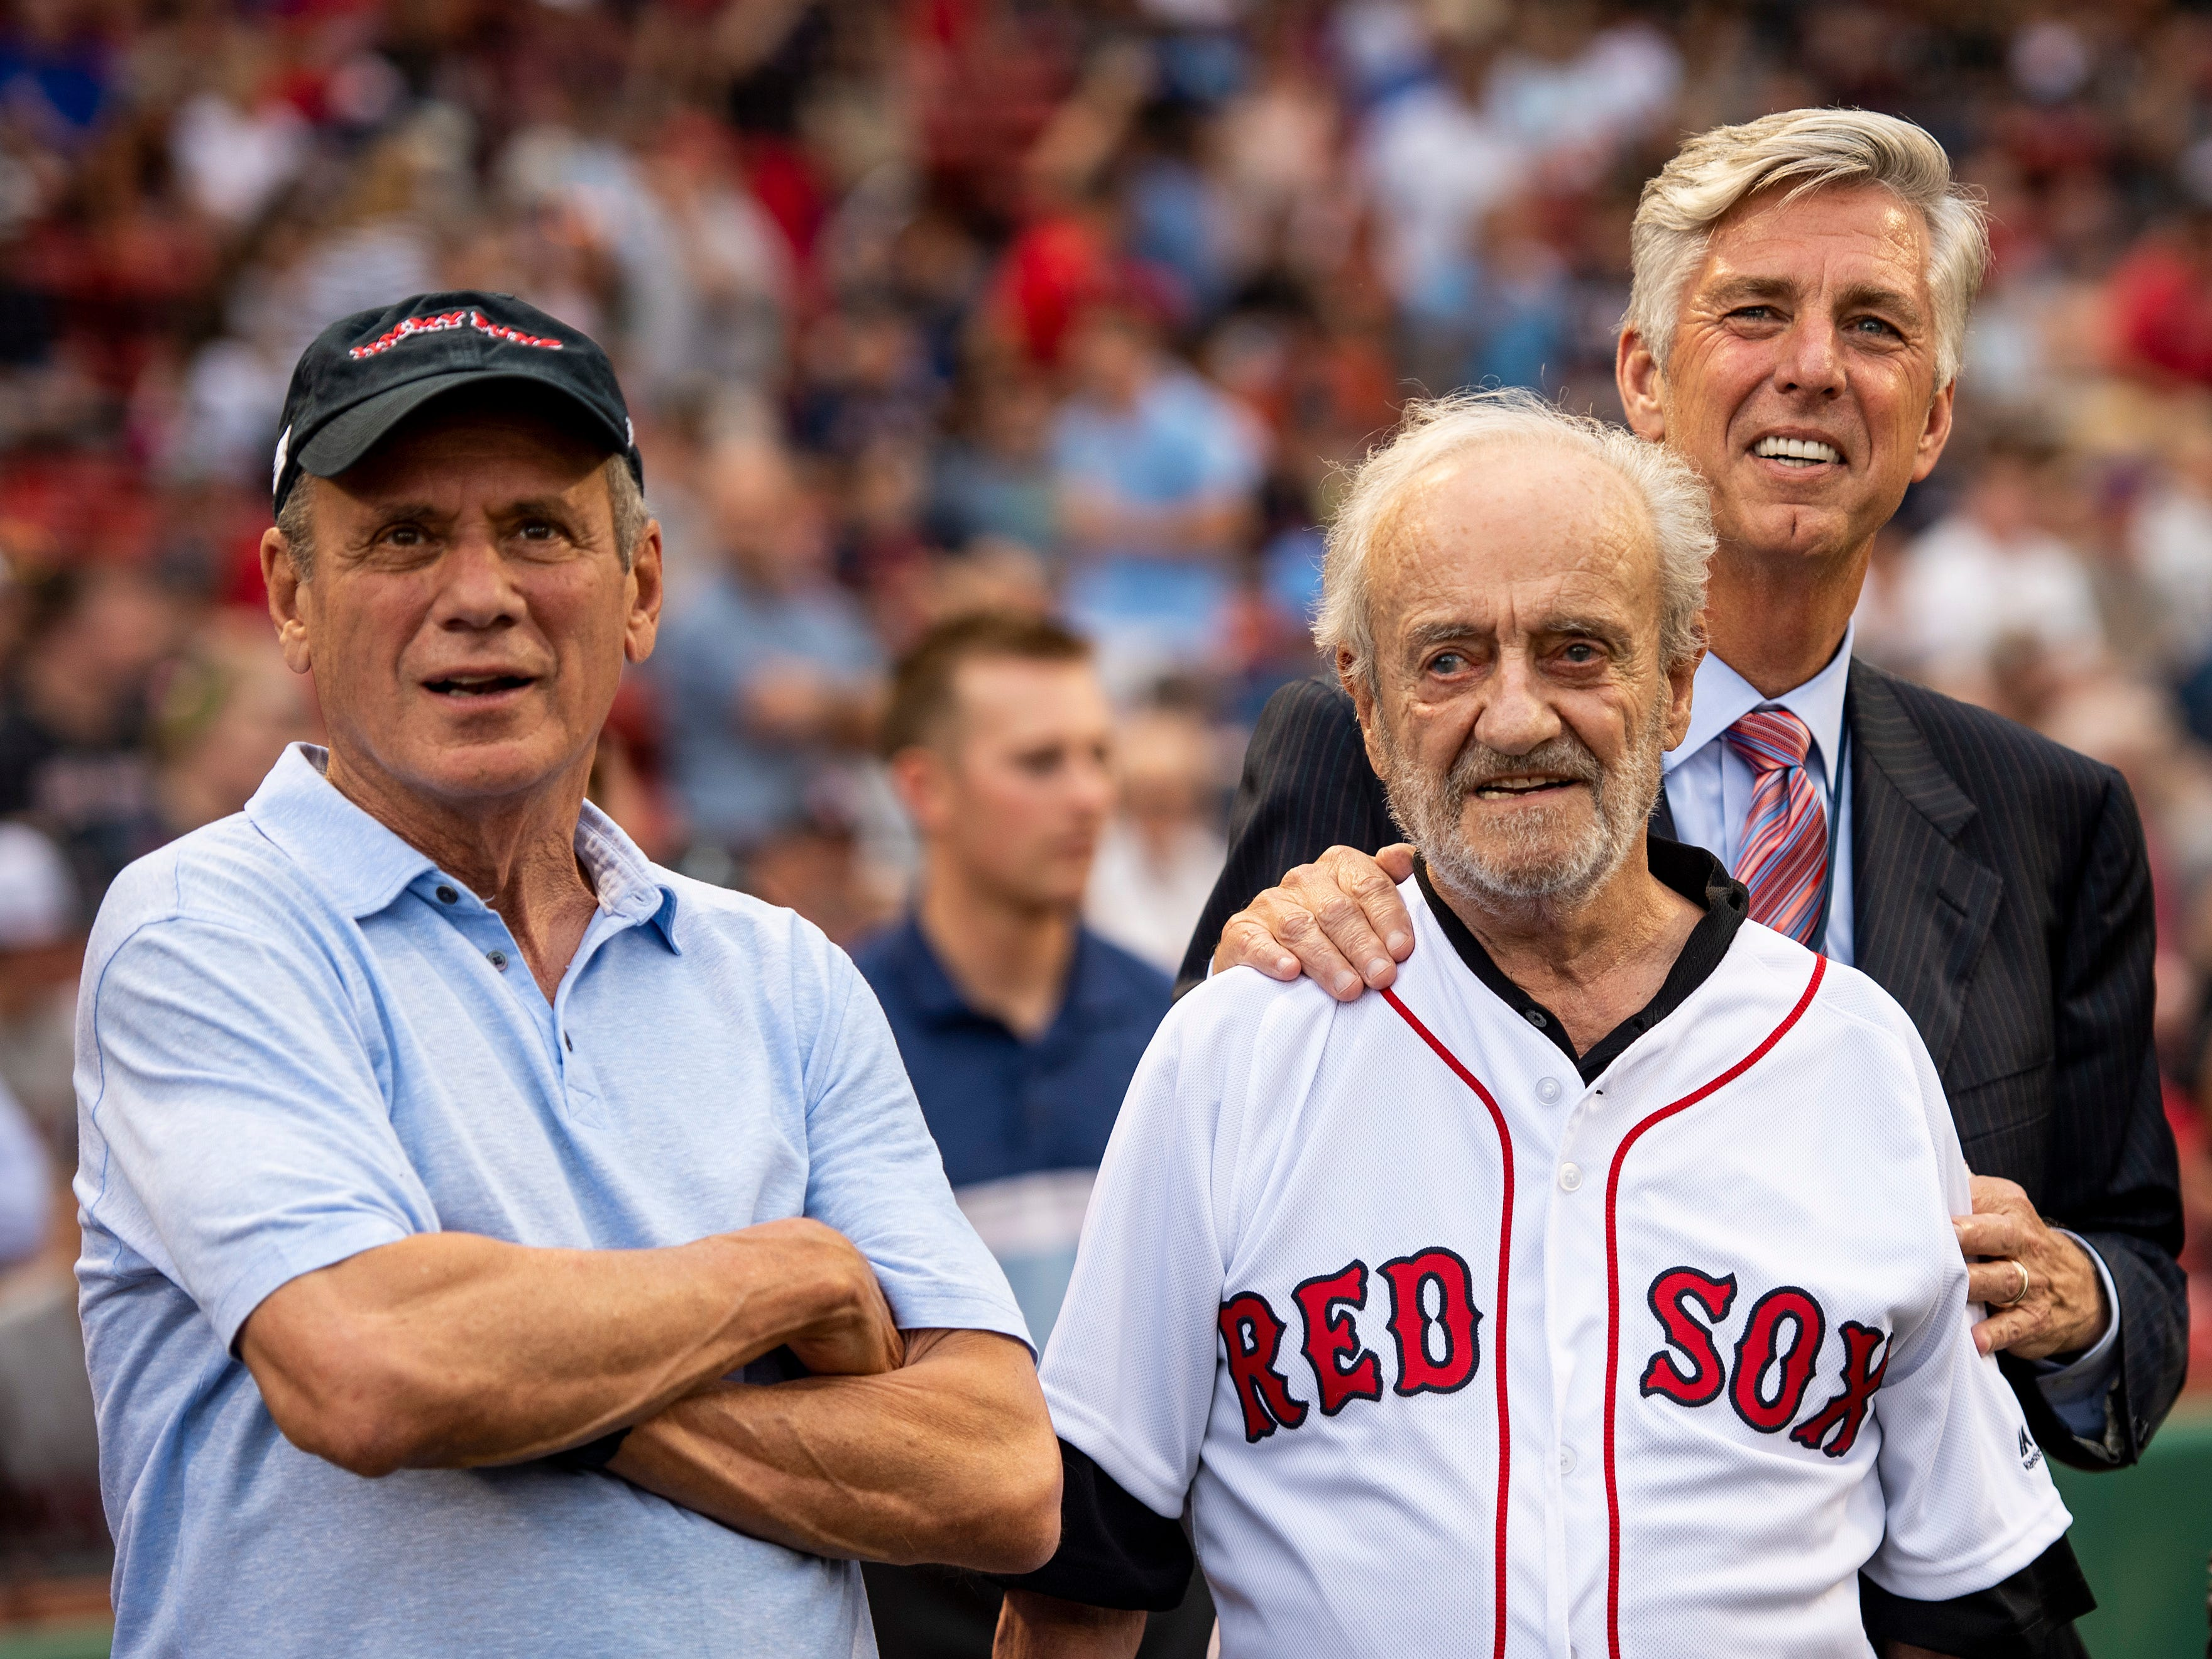 BOSTON, MA - AUGUST 2: Major League Baseball Executive Roland Hemond looks on with Boston Red Sox President & CEO Emeritus Larry Lucchino and Boston Red Sox President of Baseball Operations Dave Dombrowski before throwing out the ceremonial first pitch before a game between the Boston Red Sox and the New York Yankees on August 2, 2018 at Fenway Park in Boston, Massachusetts. (Photo by Billie Weiss/Boston Red Sox/Getty Images) *** Local Caption *** Roland Hemond; Dave Dombrowski; Larry Lucchino